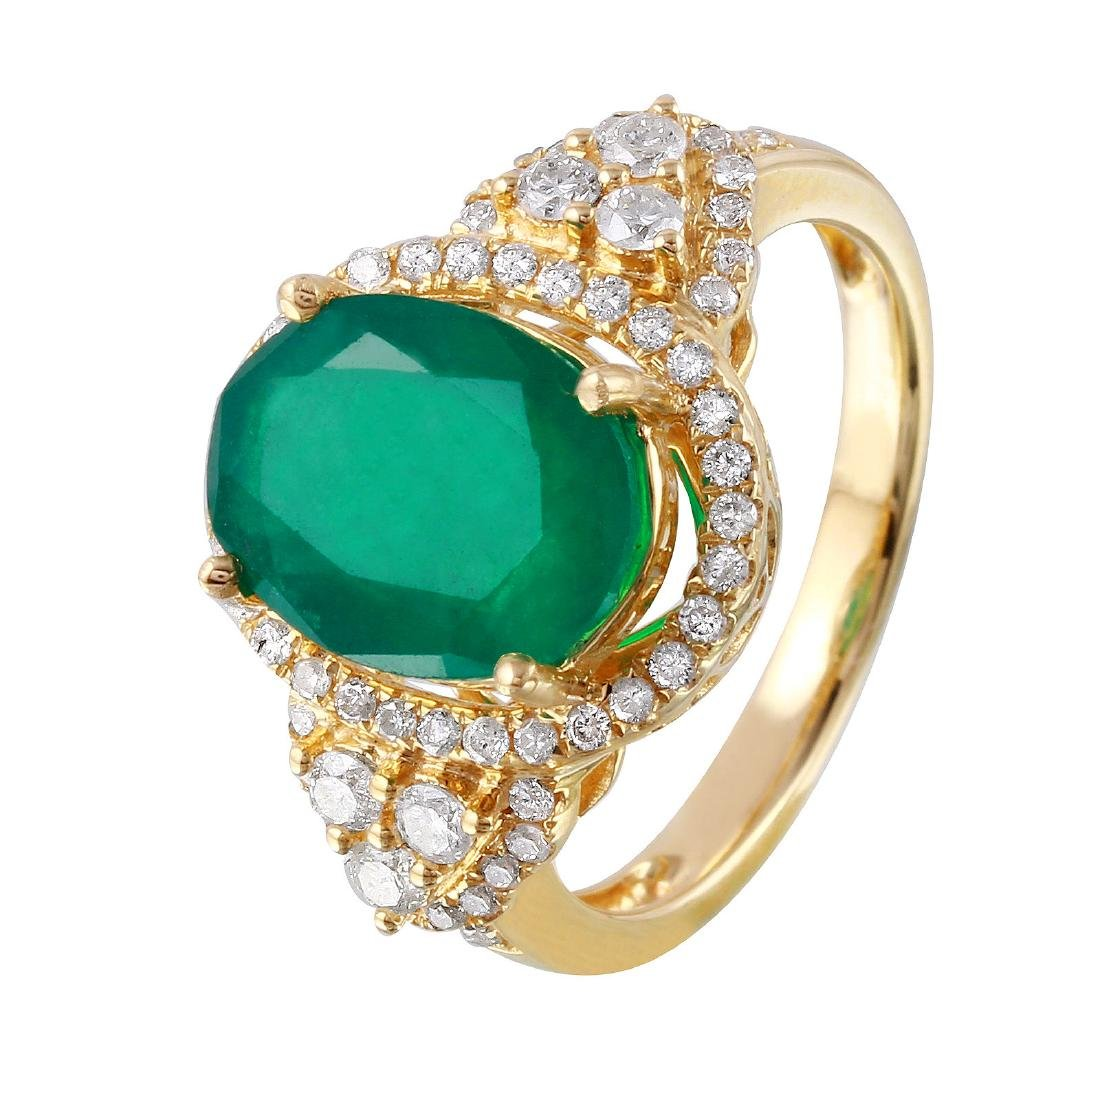 14KT Yellow Gold Emerald and Diamond Ring